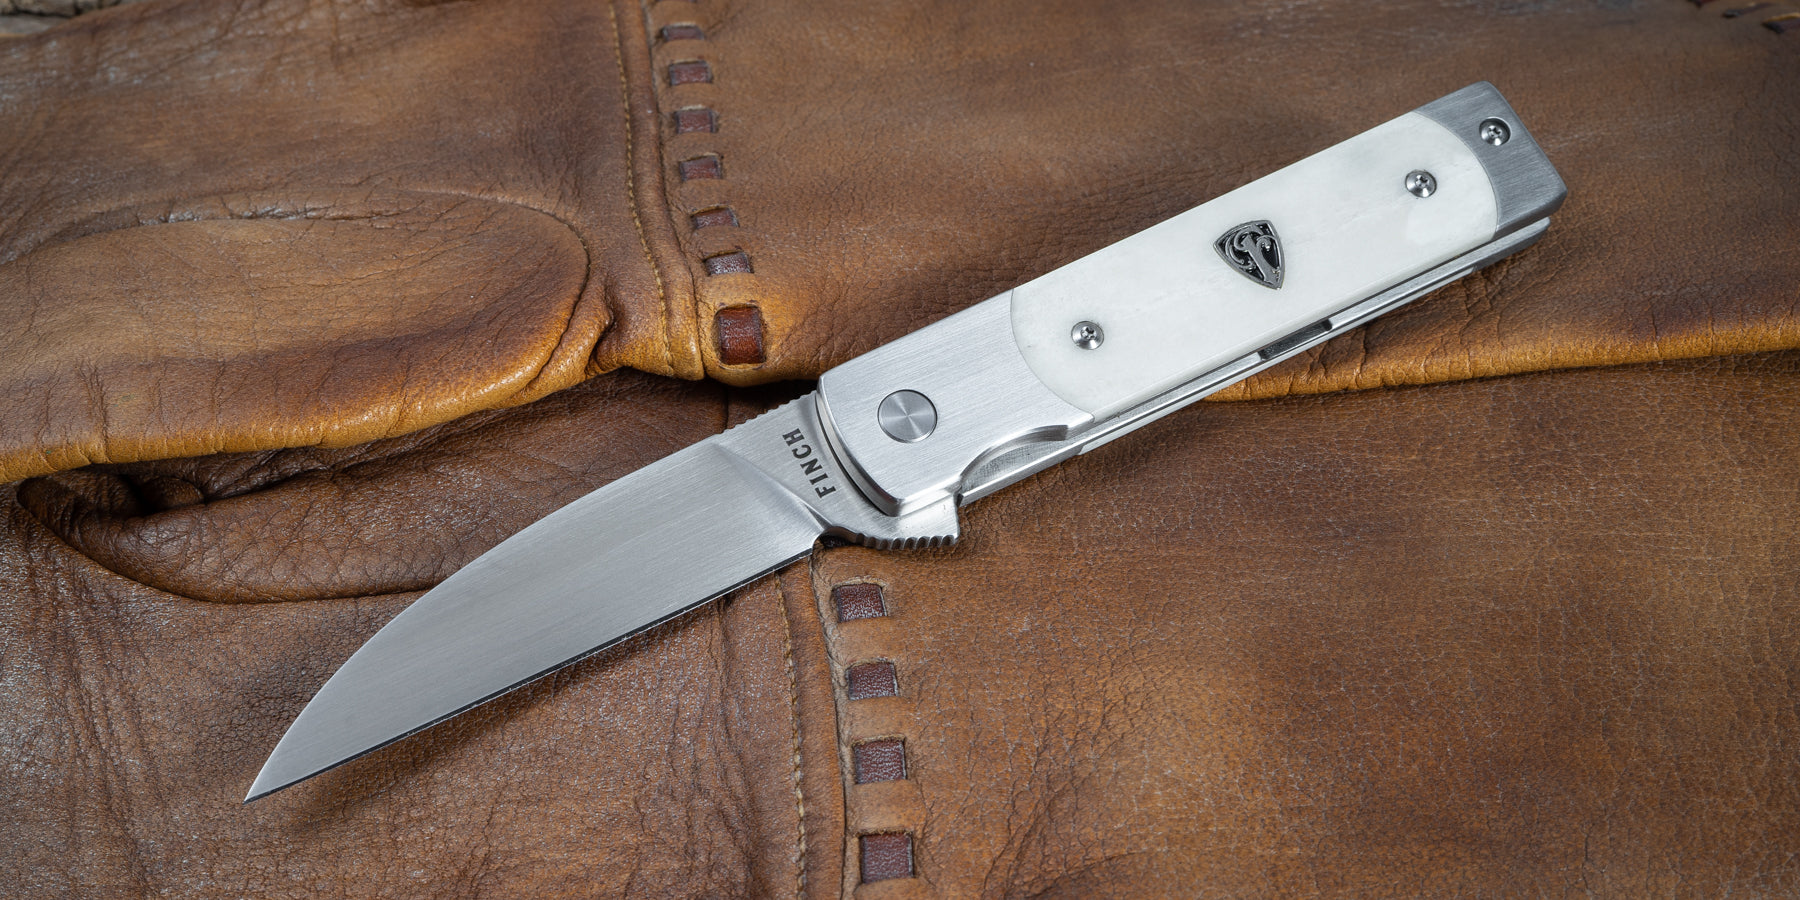 Holliday - A Unique Pocket Knife from Finch Knife Company